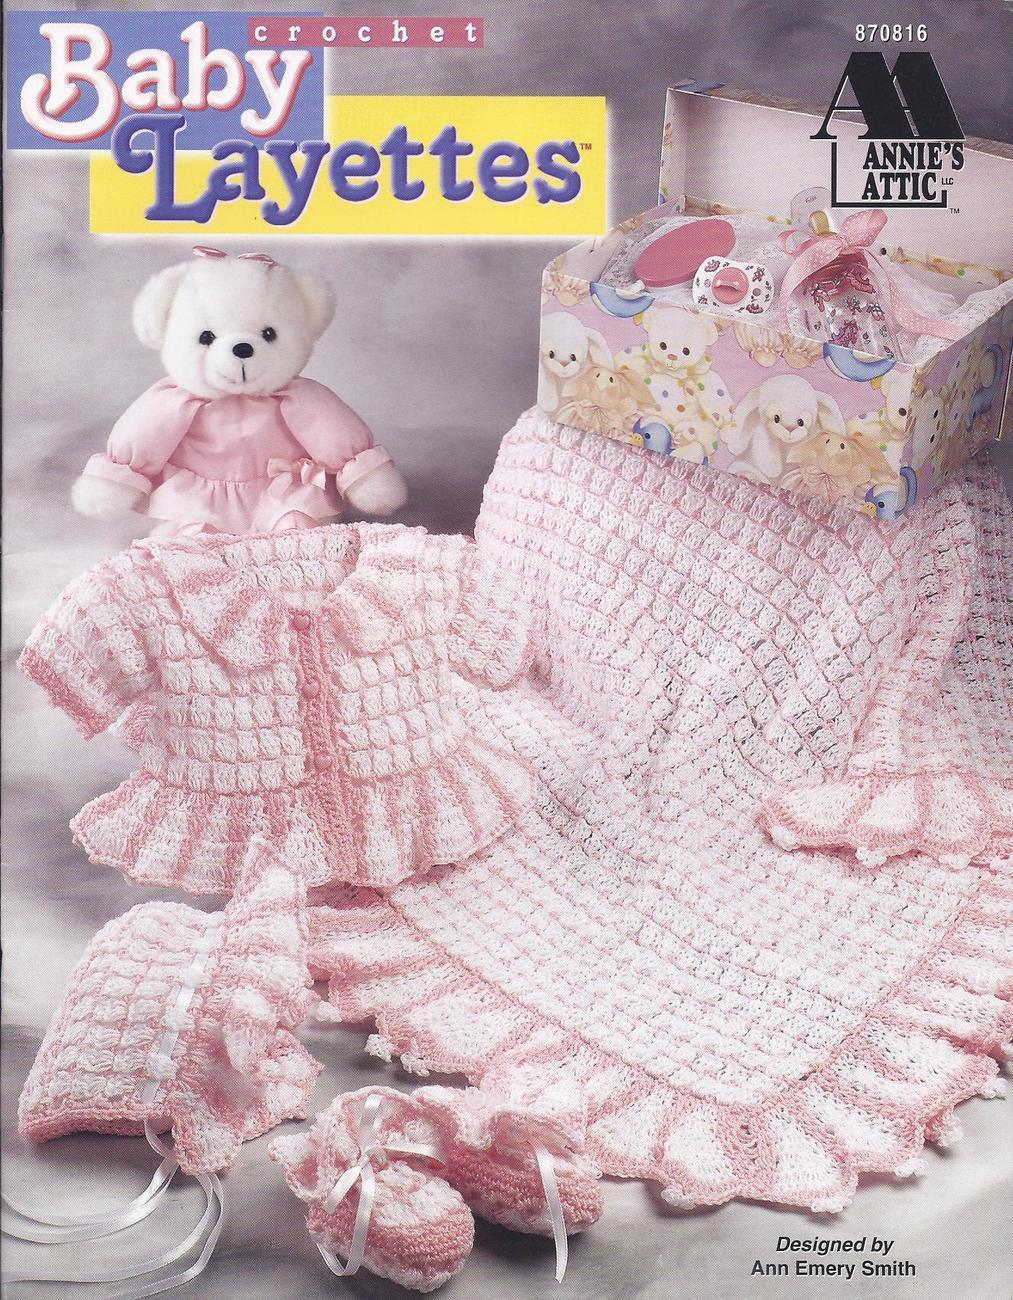 Annies Attic Crochet Patterns : Annies Attic Crochet Pattern (1990s): 53 listings - Bonanza